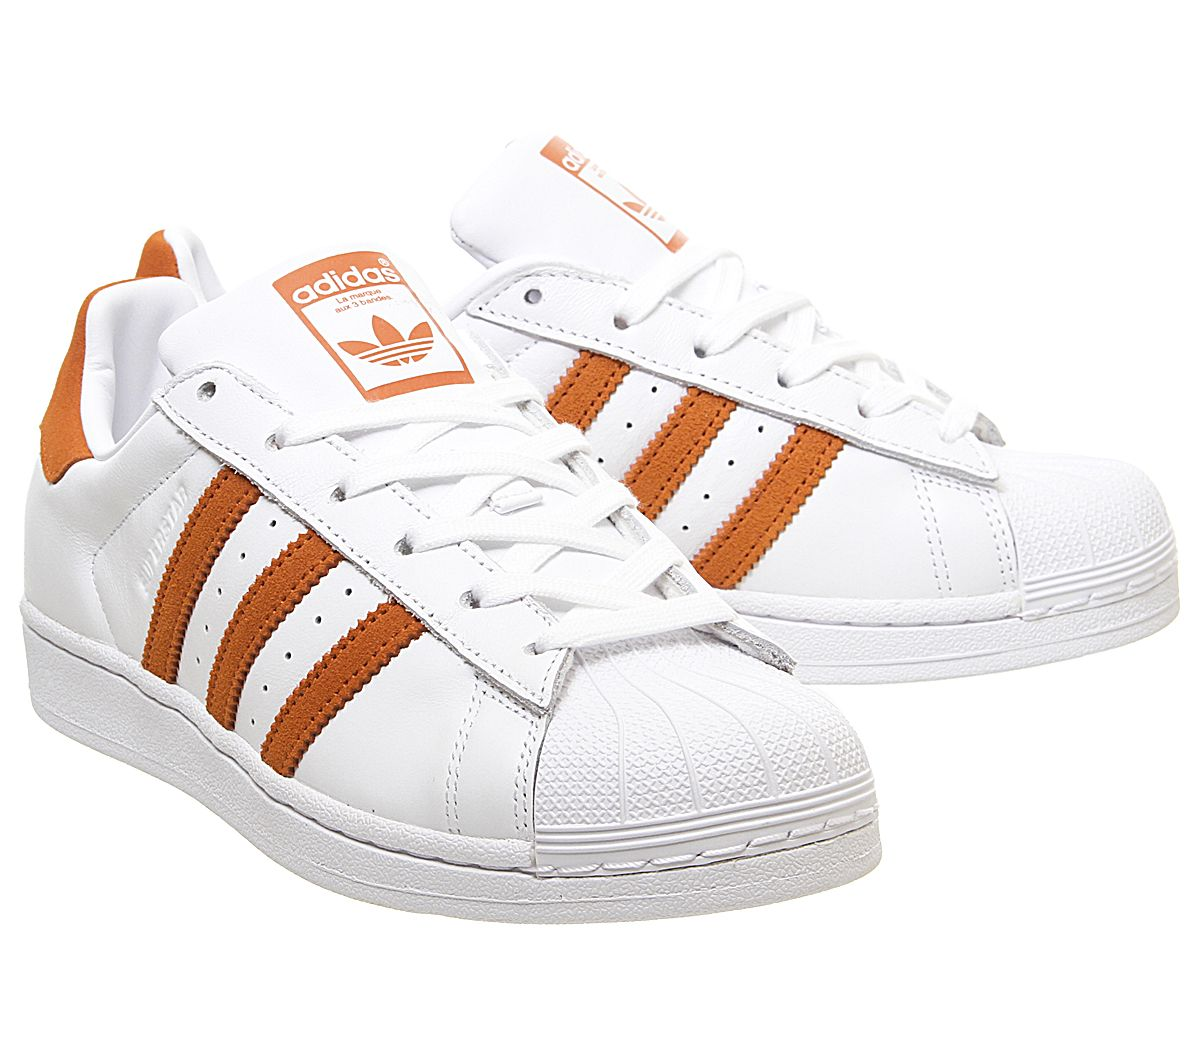 Détails sur Homme Adidas Superstar 1 Baskets Blanc Orange Baskets afficher le titre d'origine